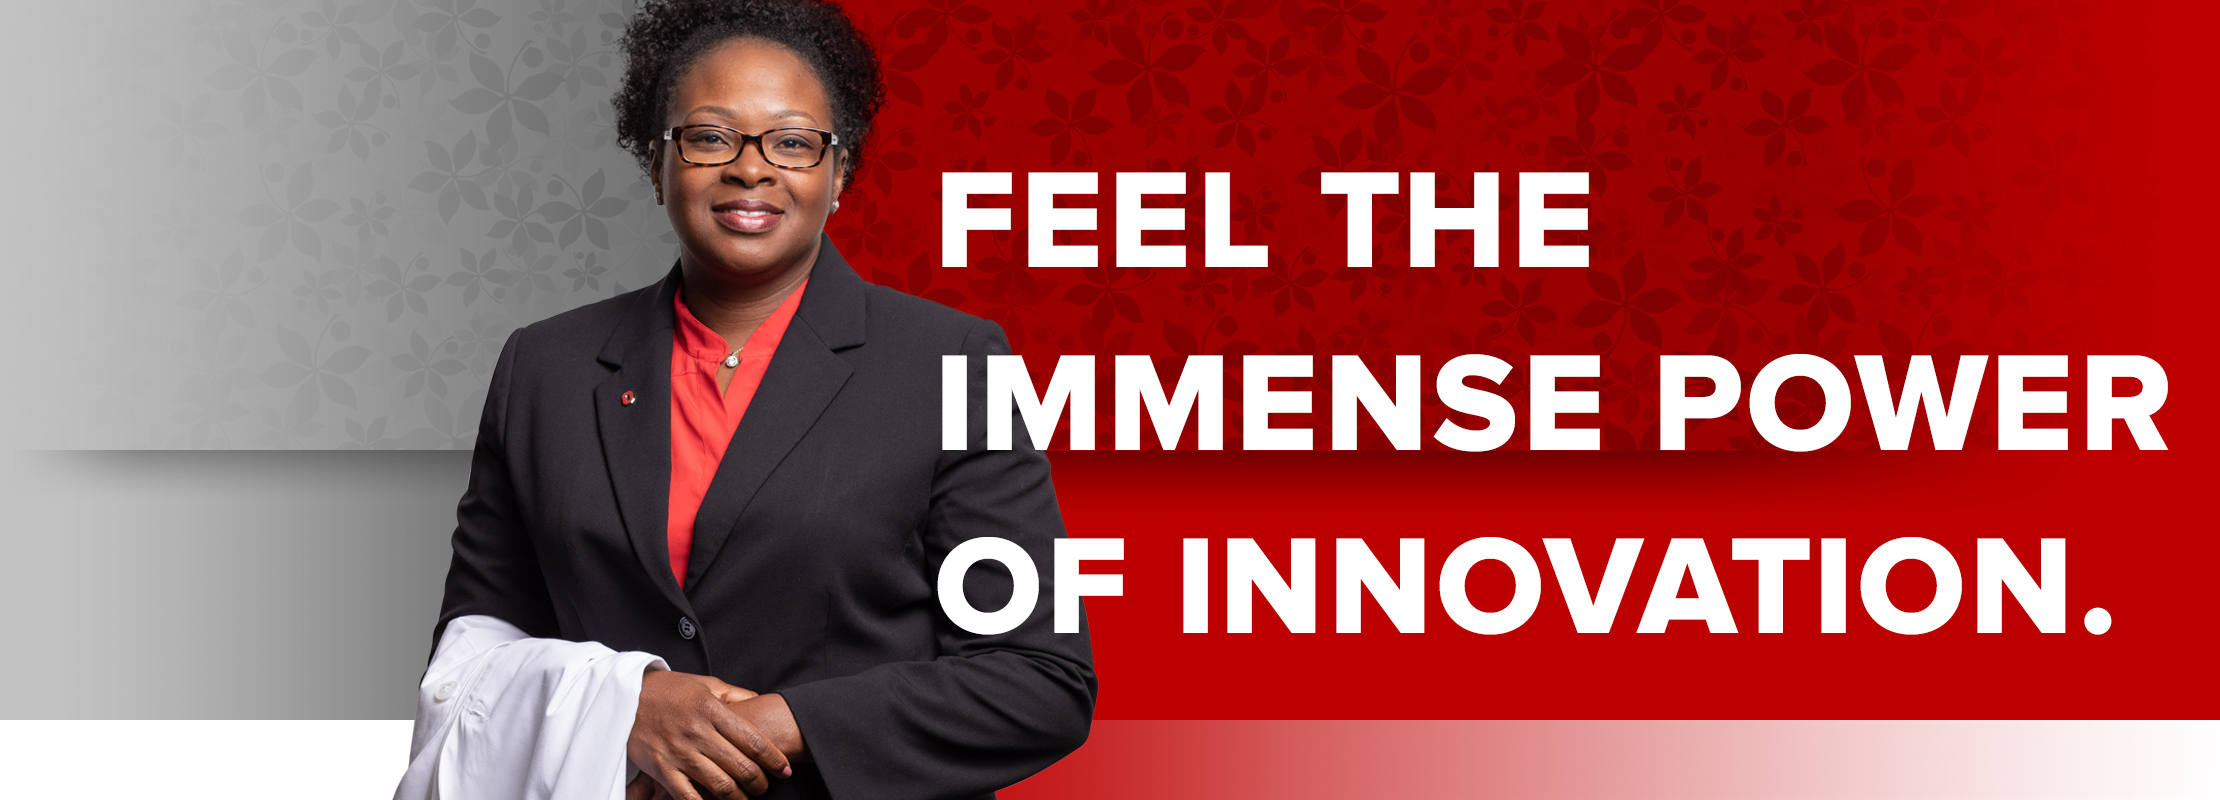 Feel the Immense Power of Innovation.